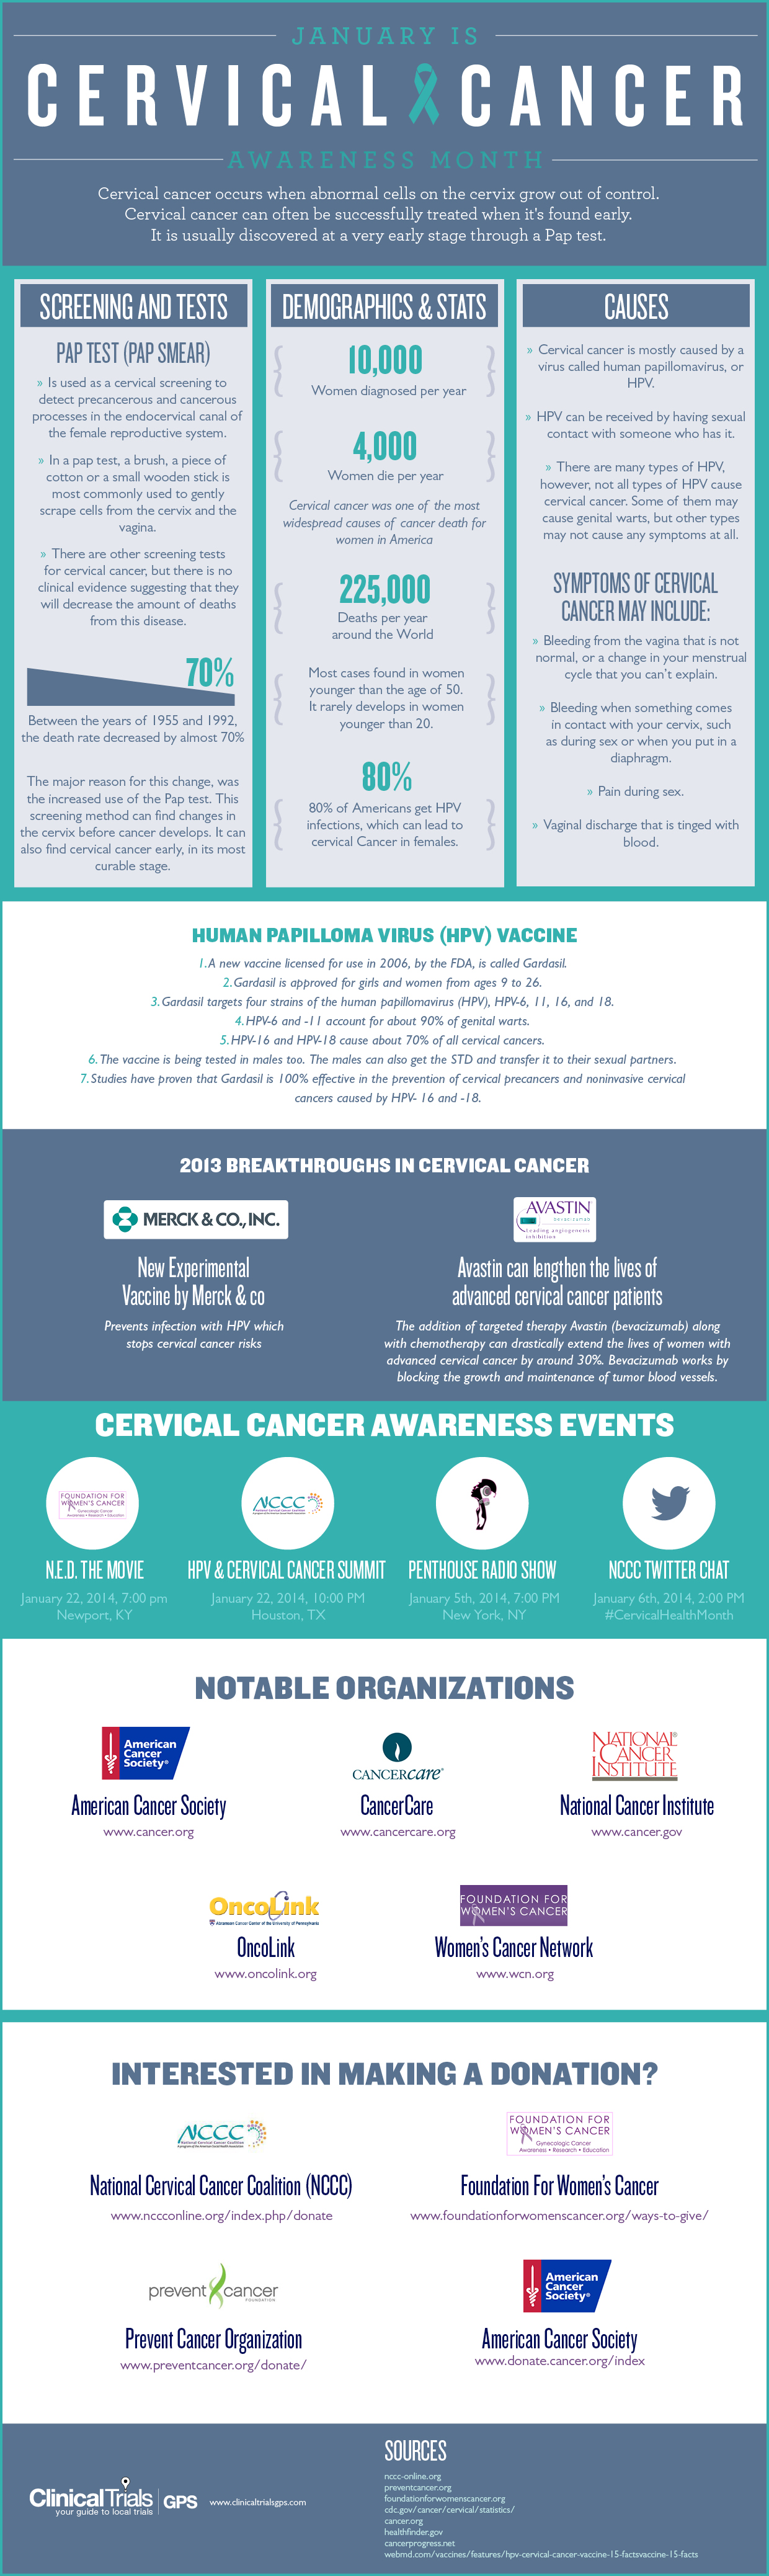 Cervical Cancer Infographic from Clinical Trials GPS